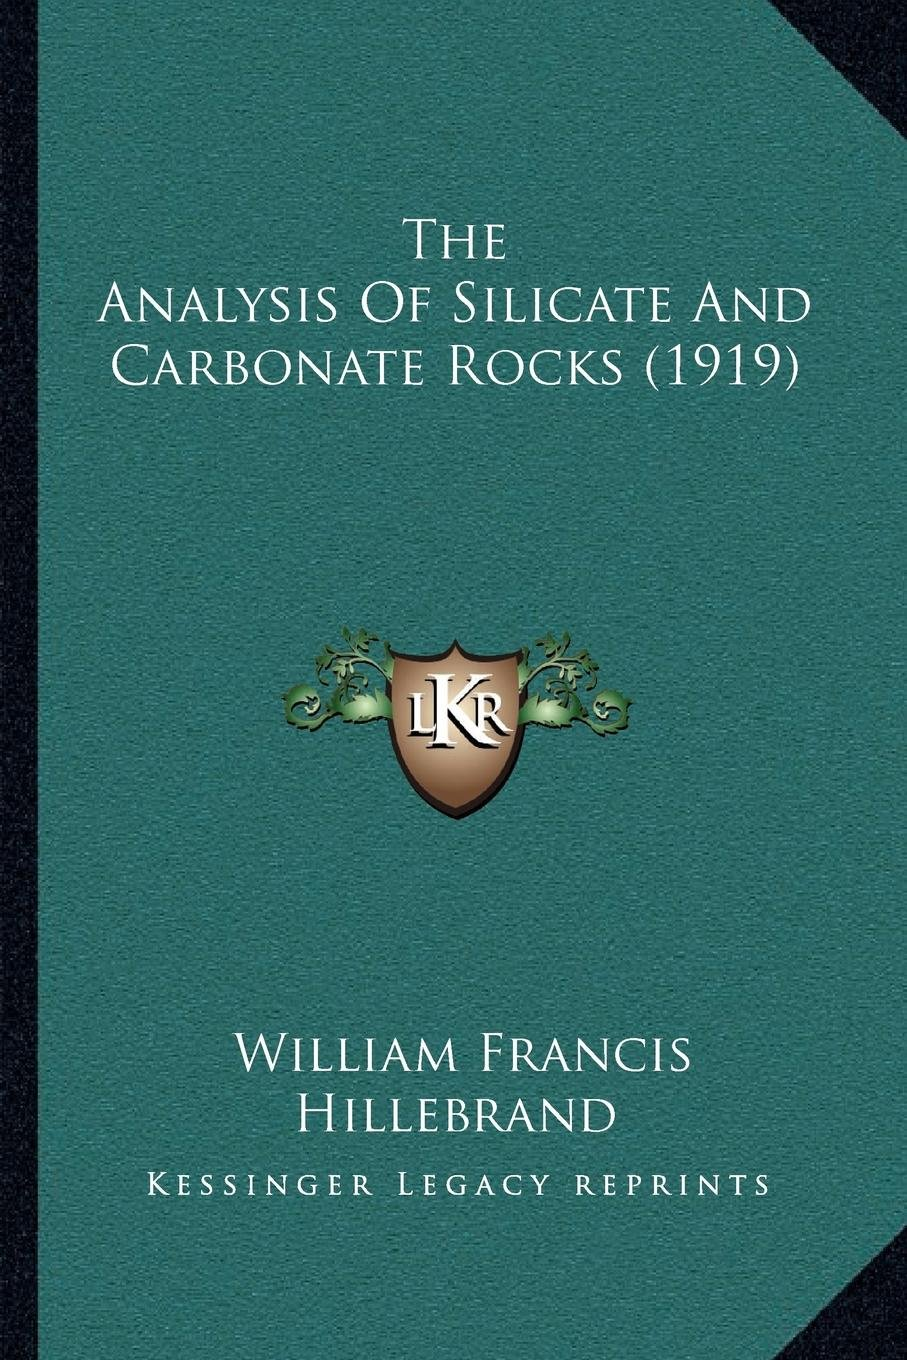 The Analysis Of Silicate And Carbonate Rocks (1919) pdf